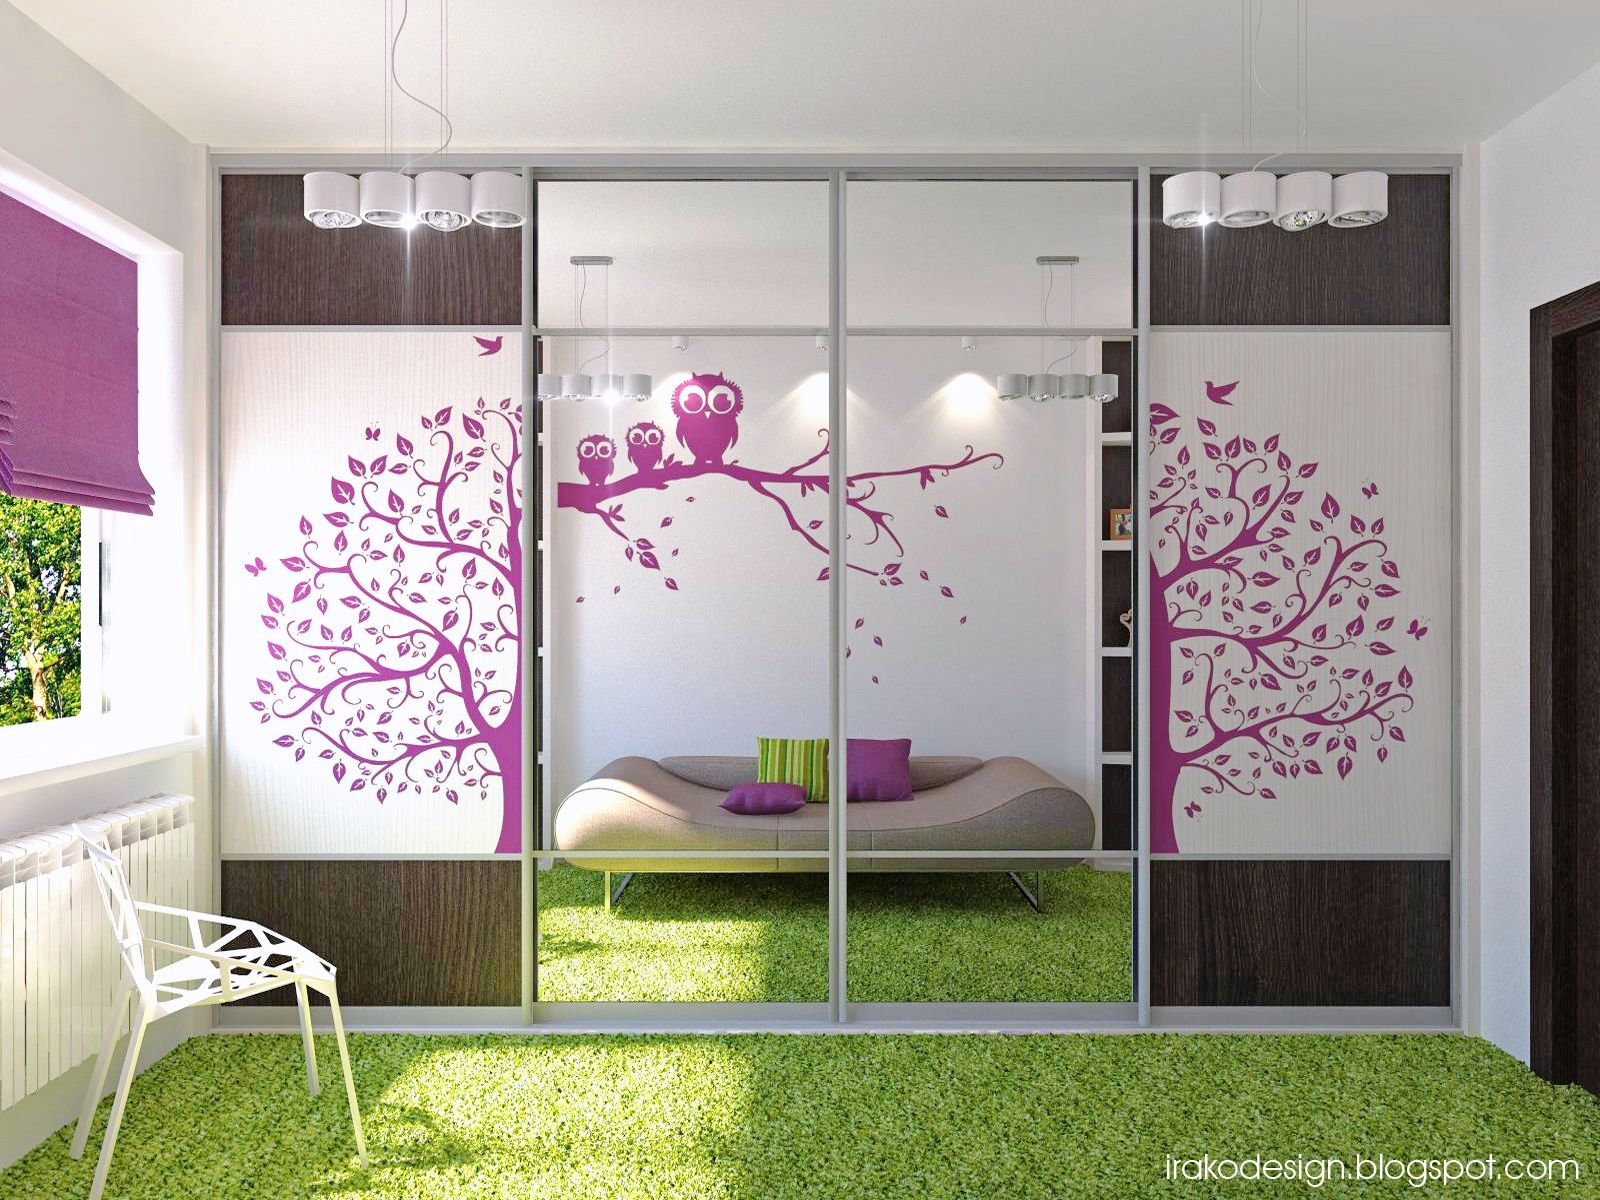 Design Teenage Girl Bedroom Decor 16 contemporary living room design inspirations 2012 decor teenage girl